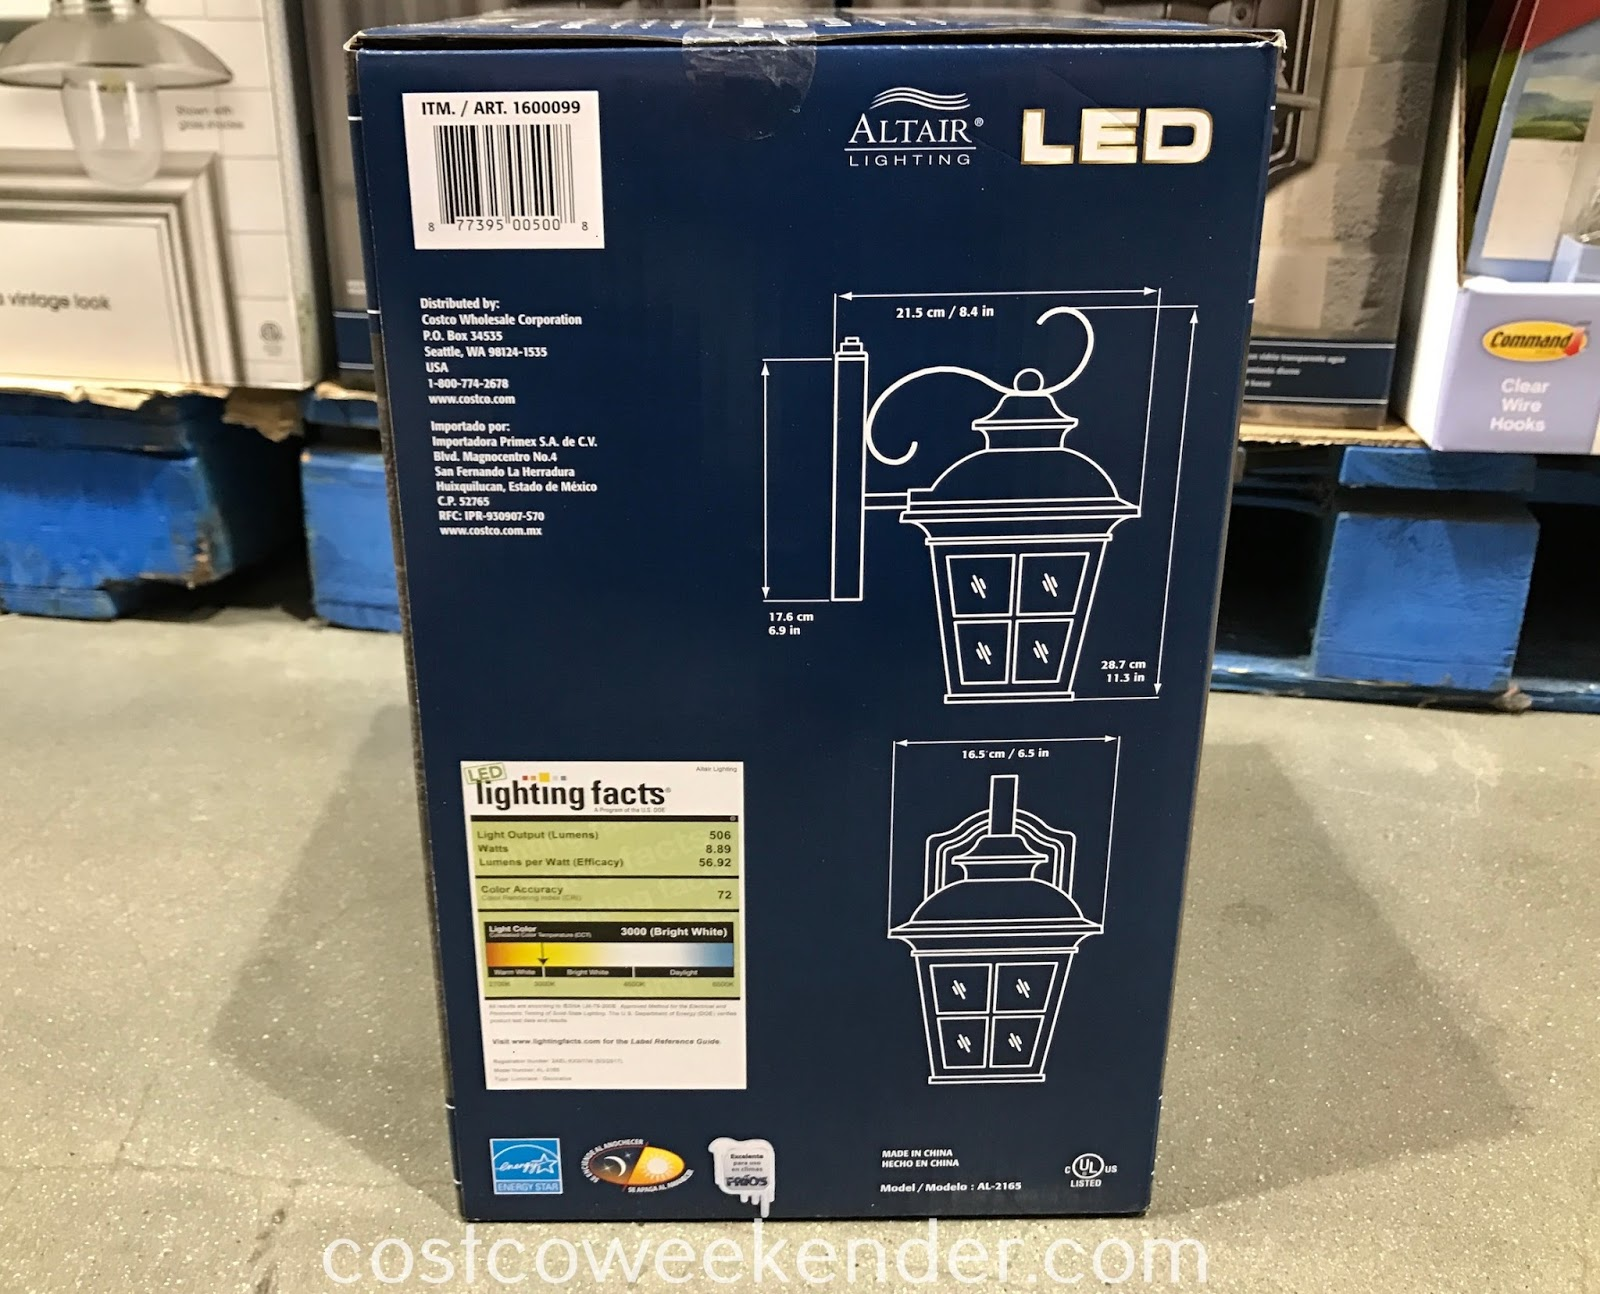 Costco 1600099 - Altair Outdoor LED Coach Light dimensions